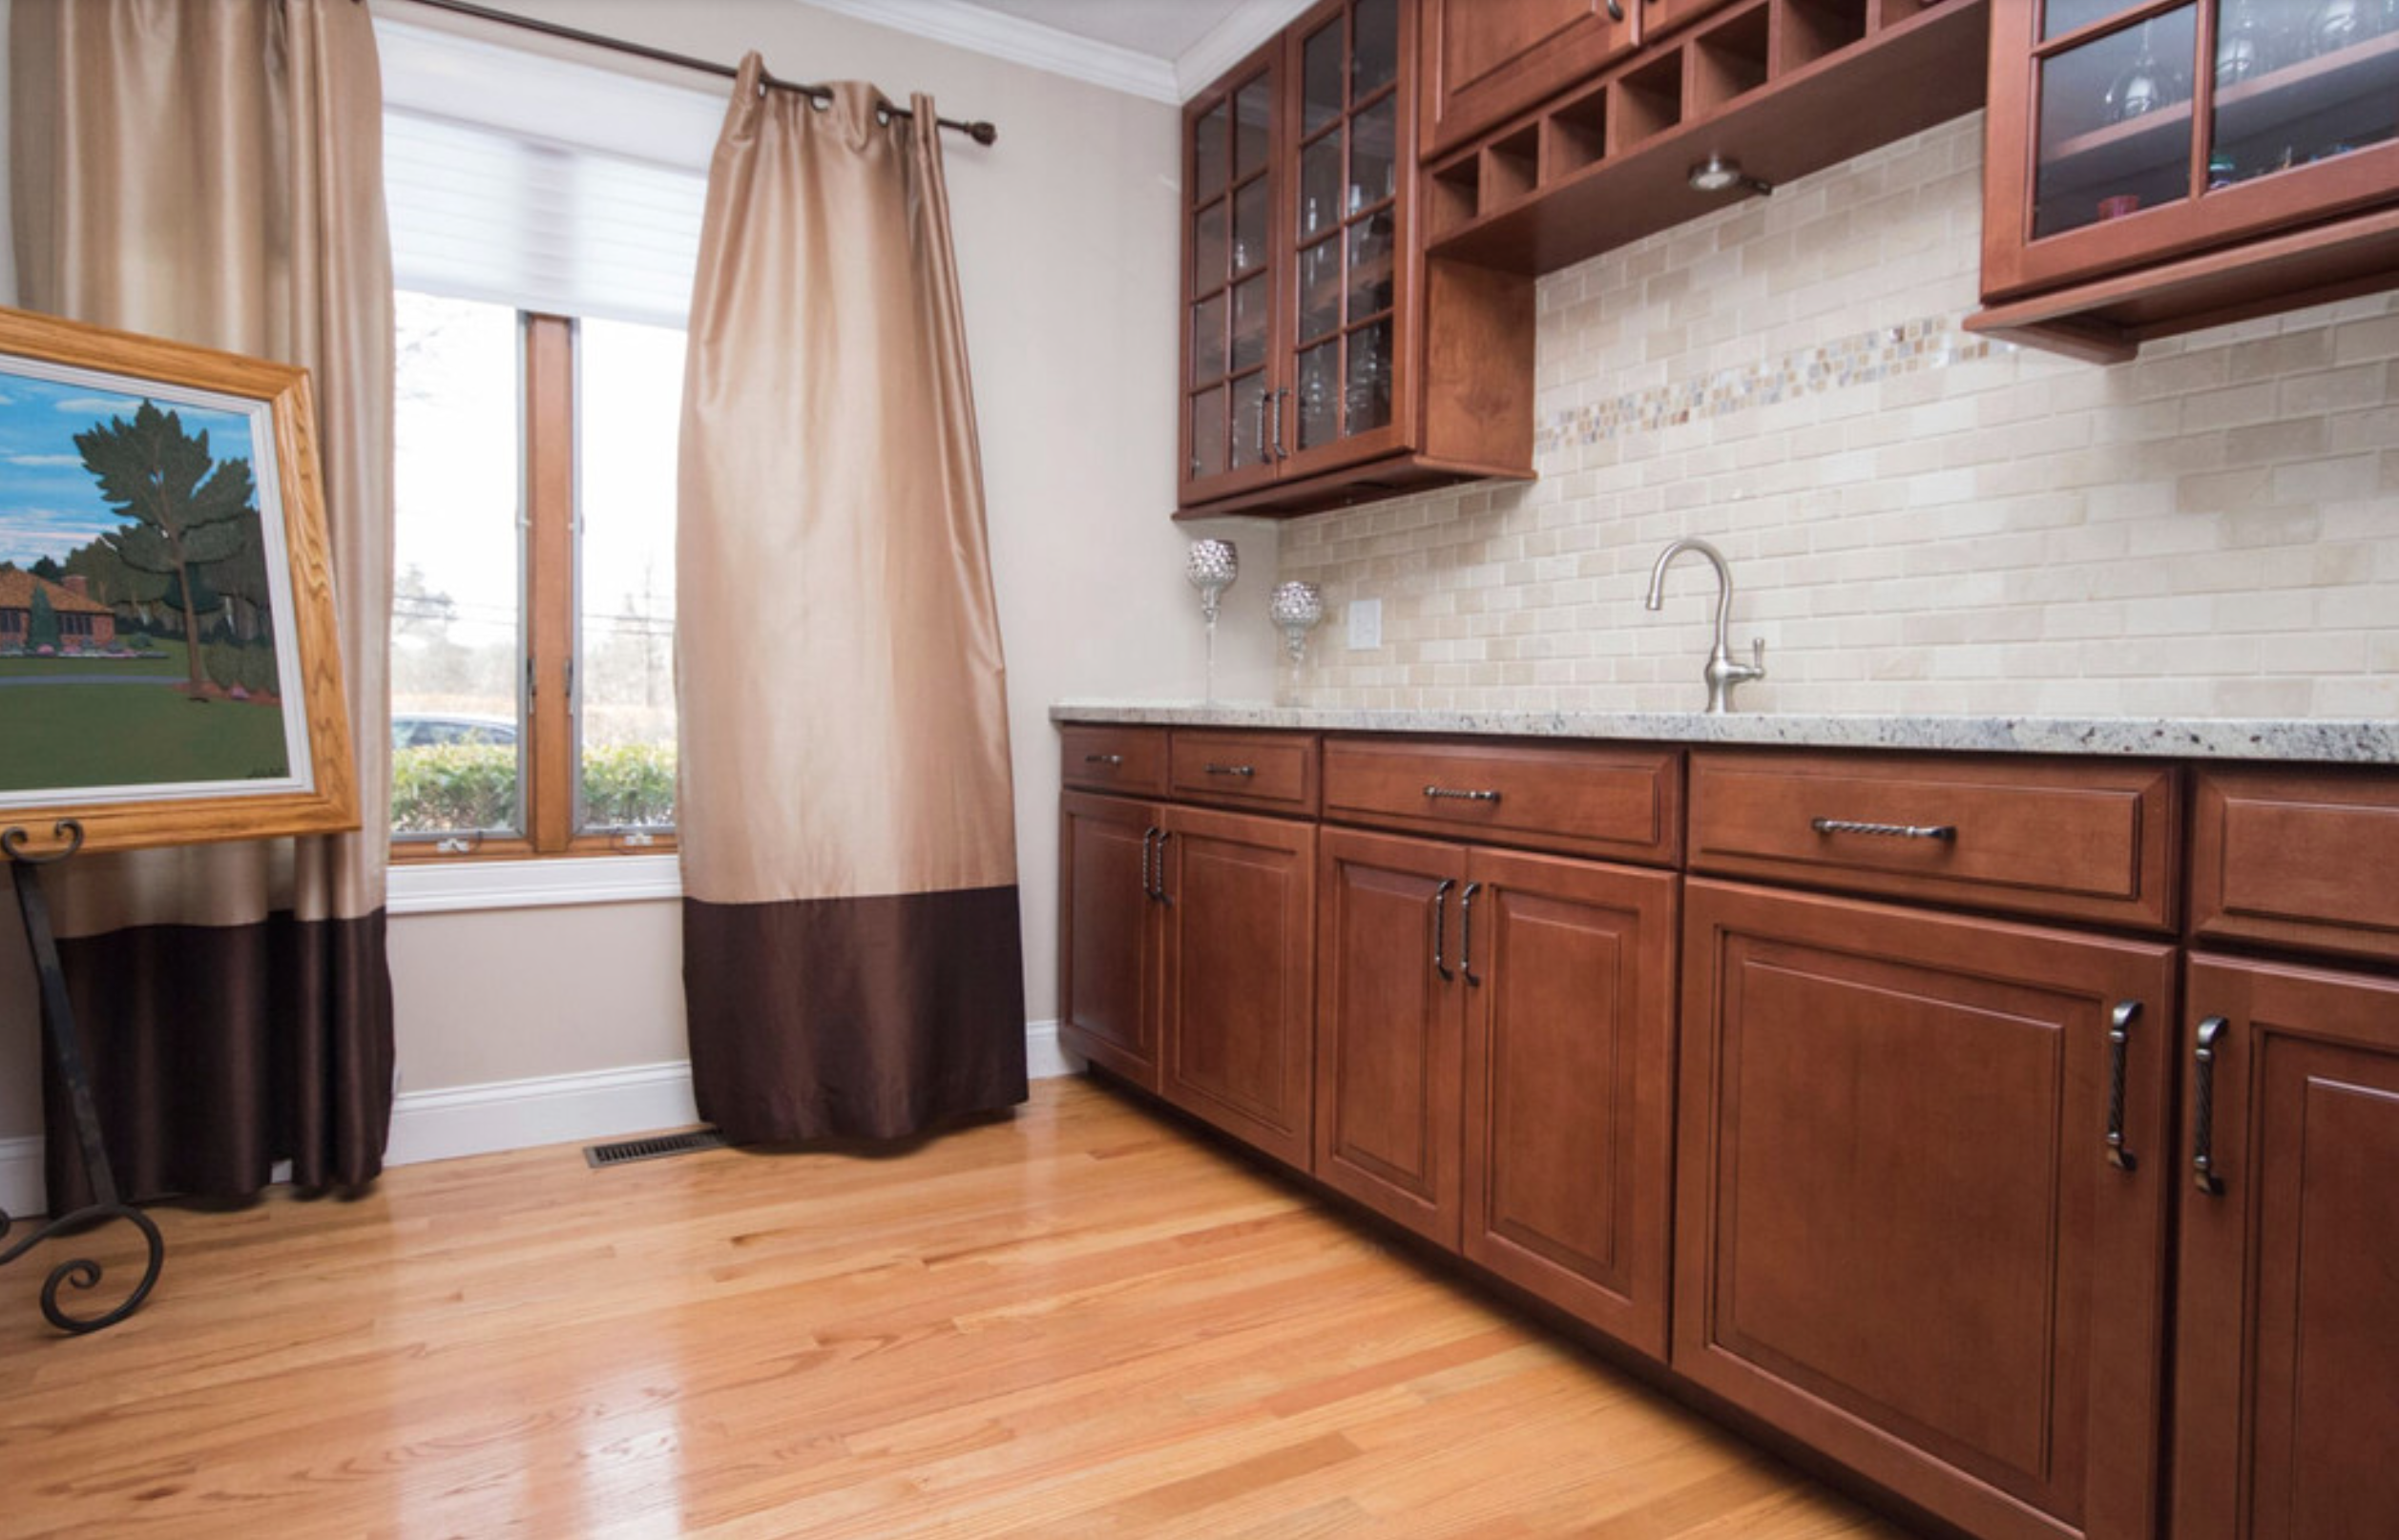 Maple Cabinet wet bar, Maple cabinets, White granite ... on Maple Cabinets With White Granite Countertops  id=58110